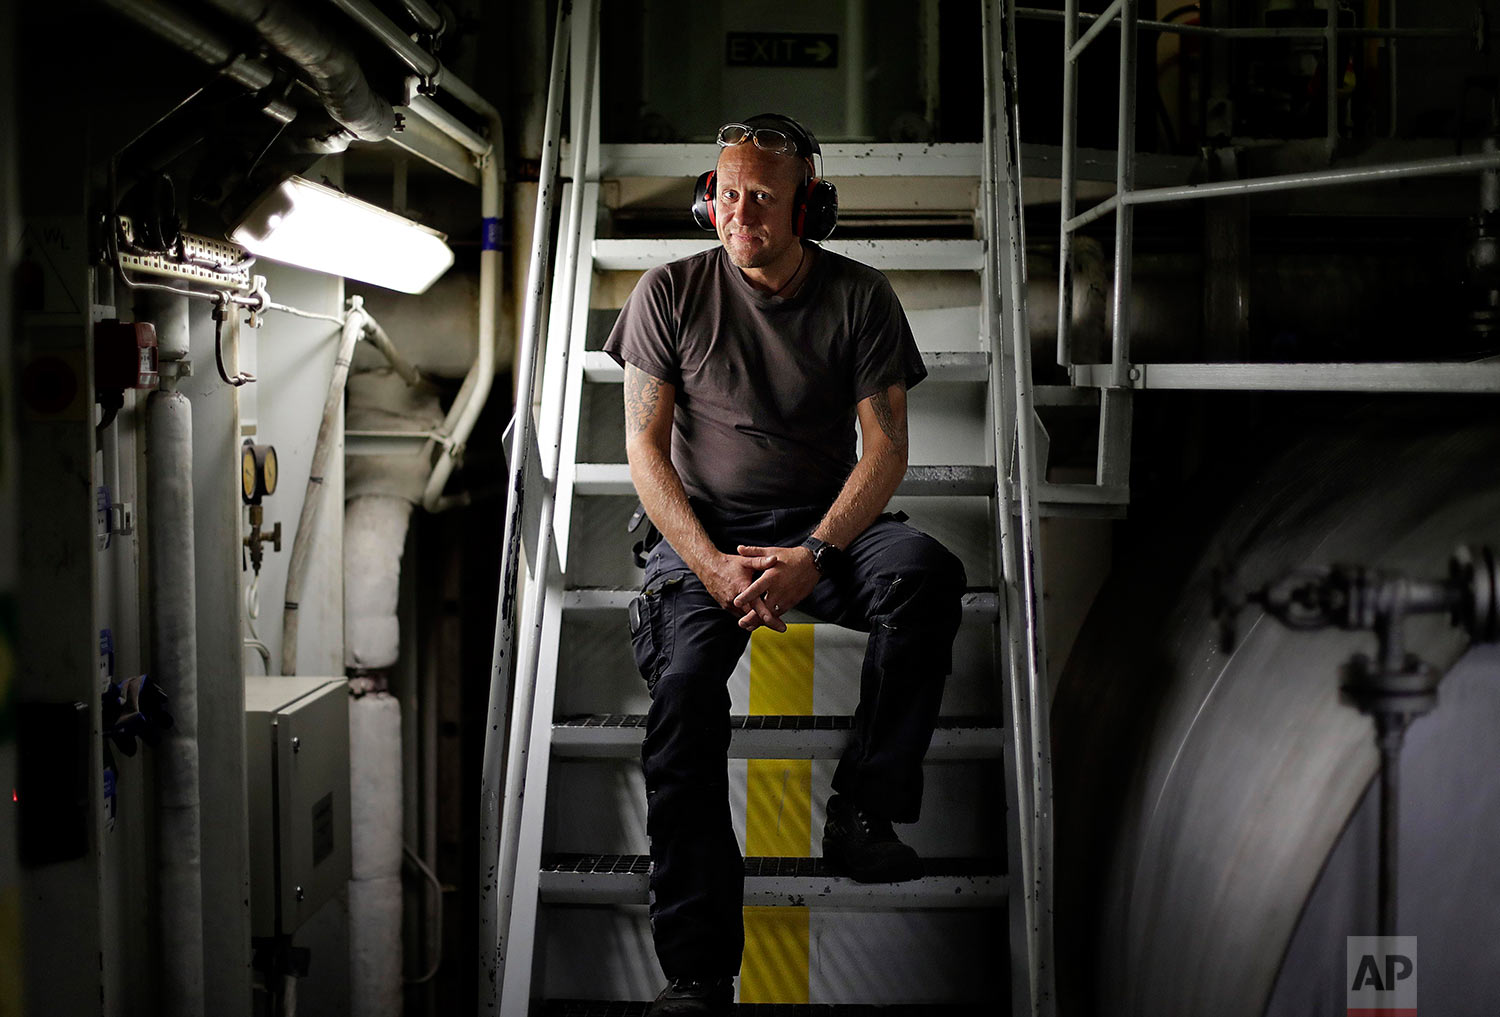 "First engineer Kristian Autio, 44, sits for a portrait in the engine room of the Finnish icebreaker MSV Nordica as it sails in the North Pacific Ocean toward the Bering Strait, Sunday, July 9, 2017. Autio has worked aboard Finnish icebreakers since 2002 and this will be his first time crossing the Arctic's Northwest Passage. Finland has a long history of building icebreakers and has built 60 percent of the world's fleet. ""We take care of the ship as if it's our own,"" said Autio. ""We [Finns] are very proud of our icebreakers."" (AP Photo/David Goldman)"